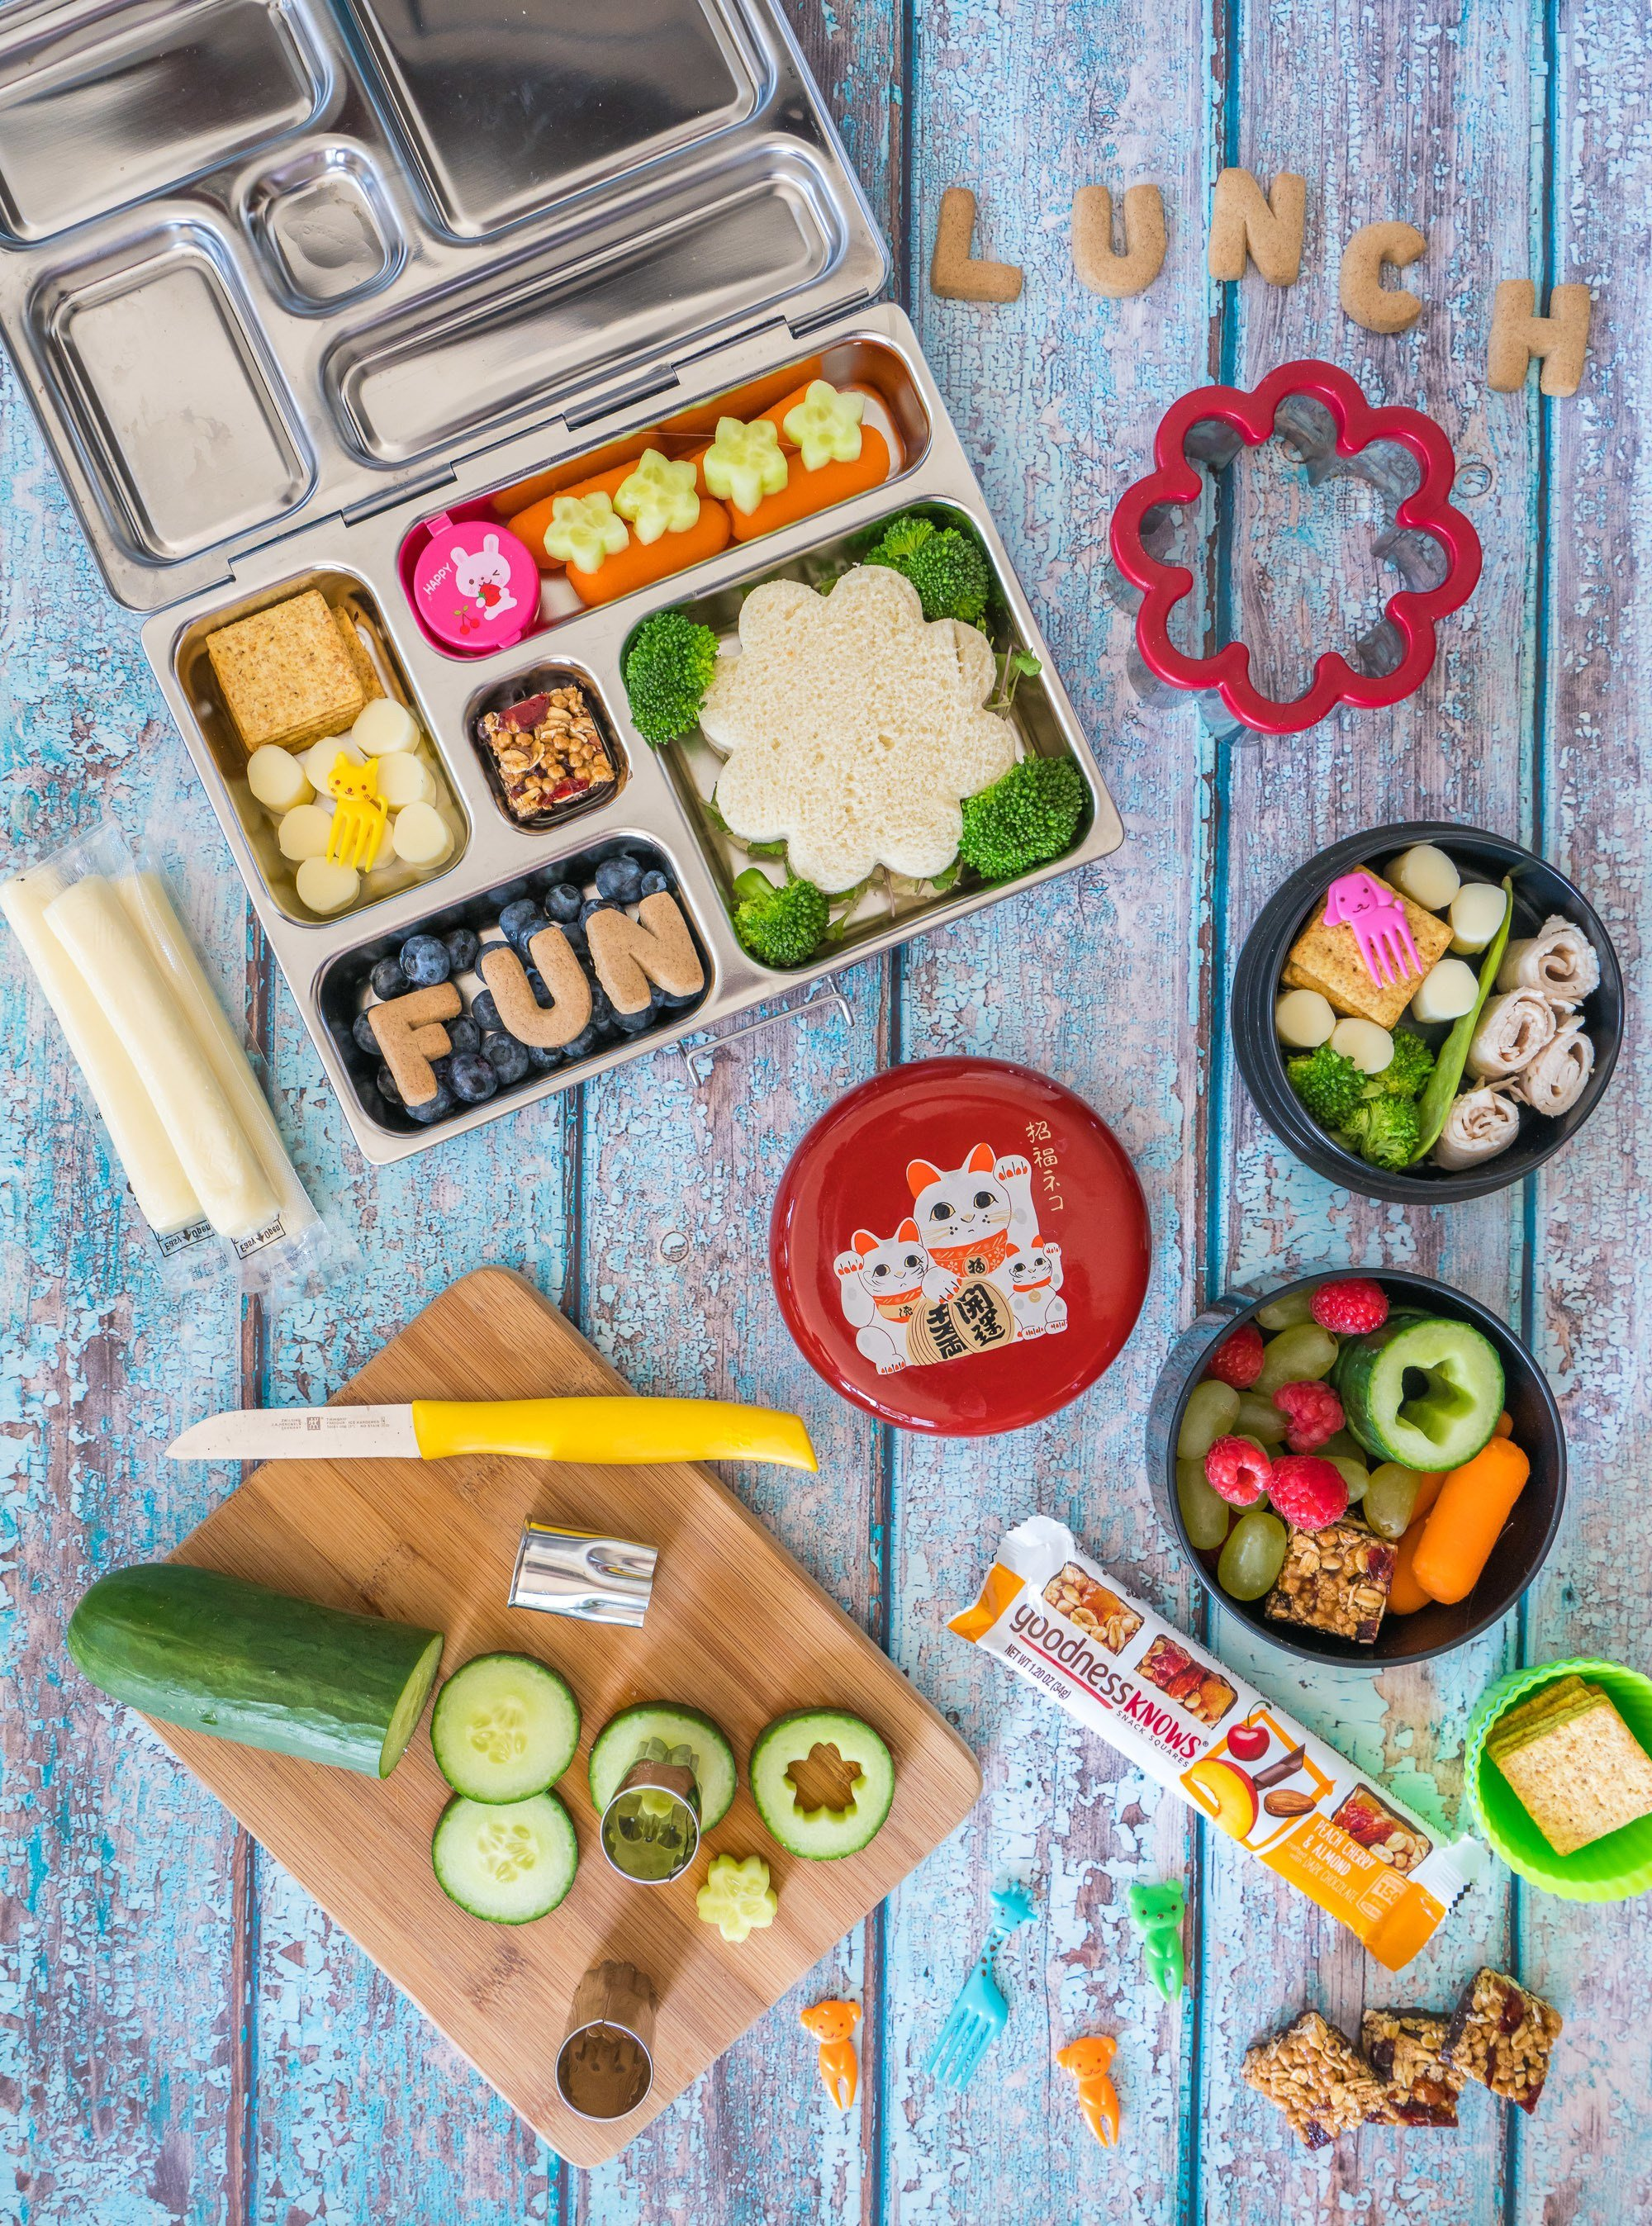 Easily make an everyday bento box lunch using these tips.